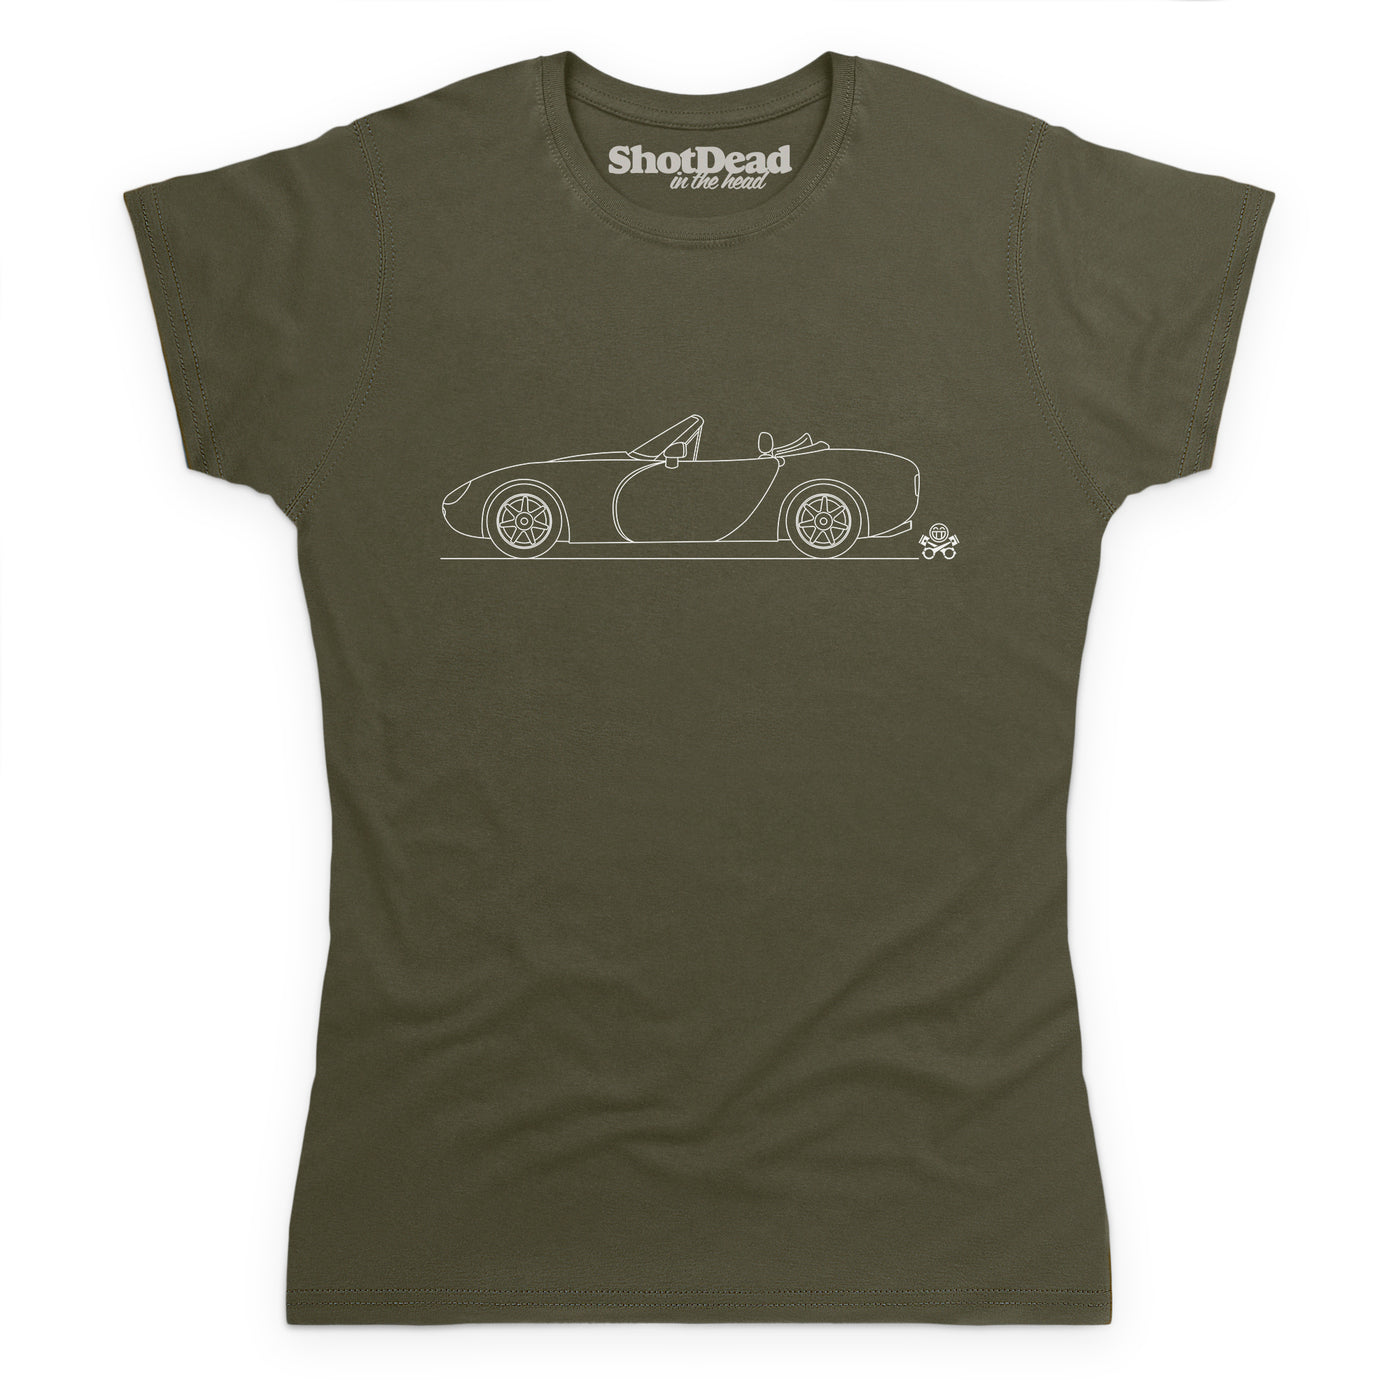 Style: Female, Color: Olive Green.